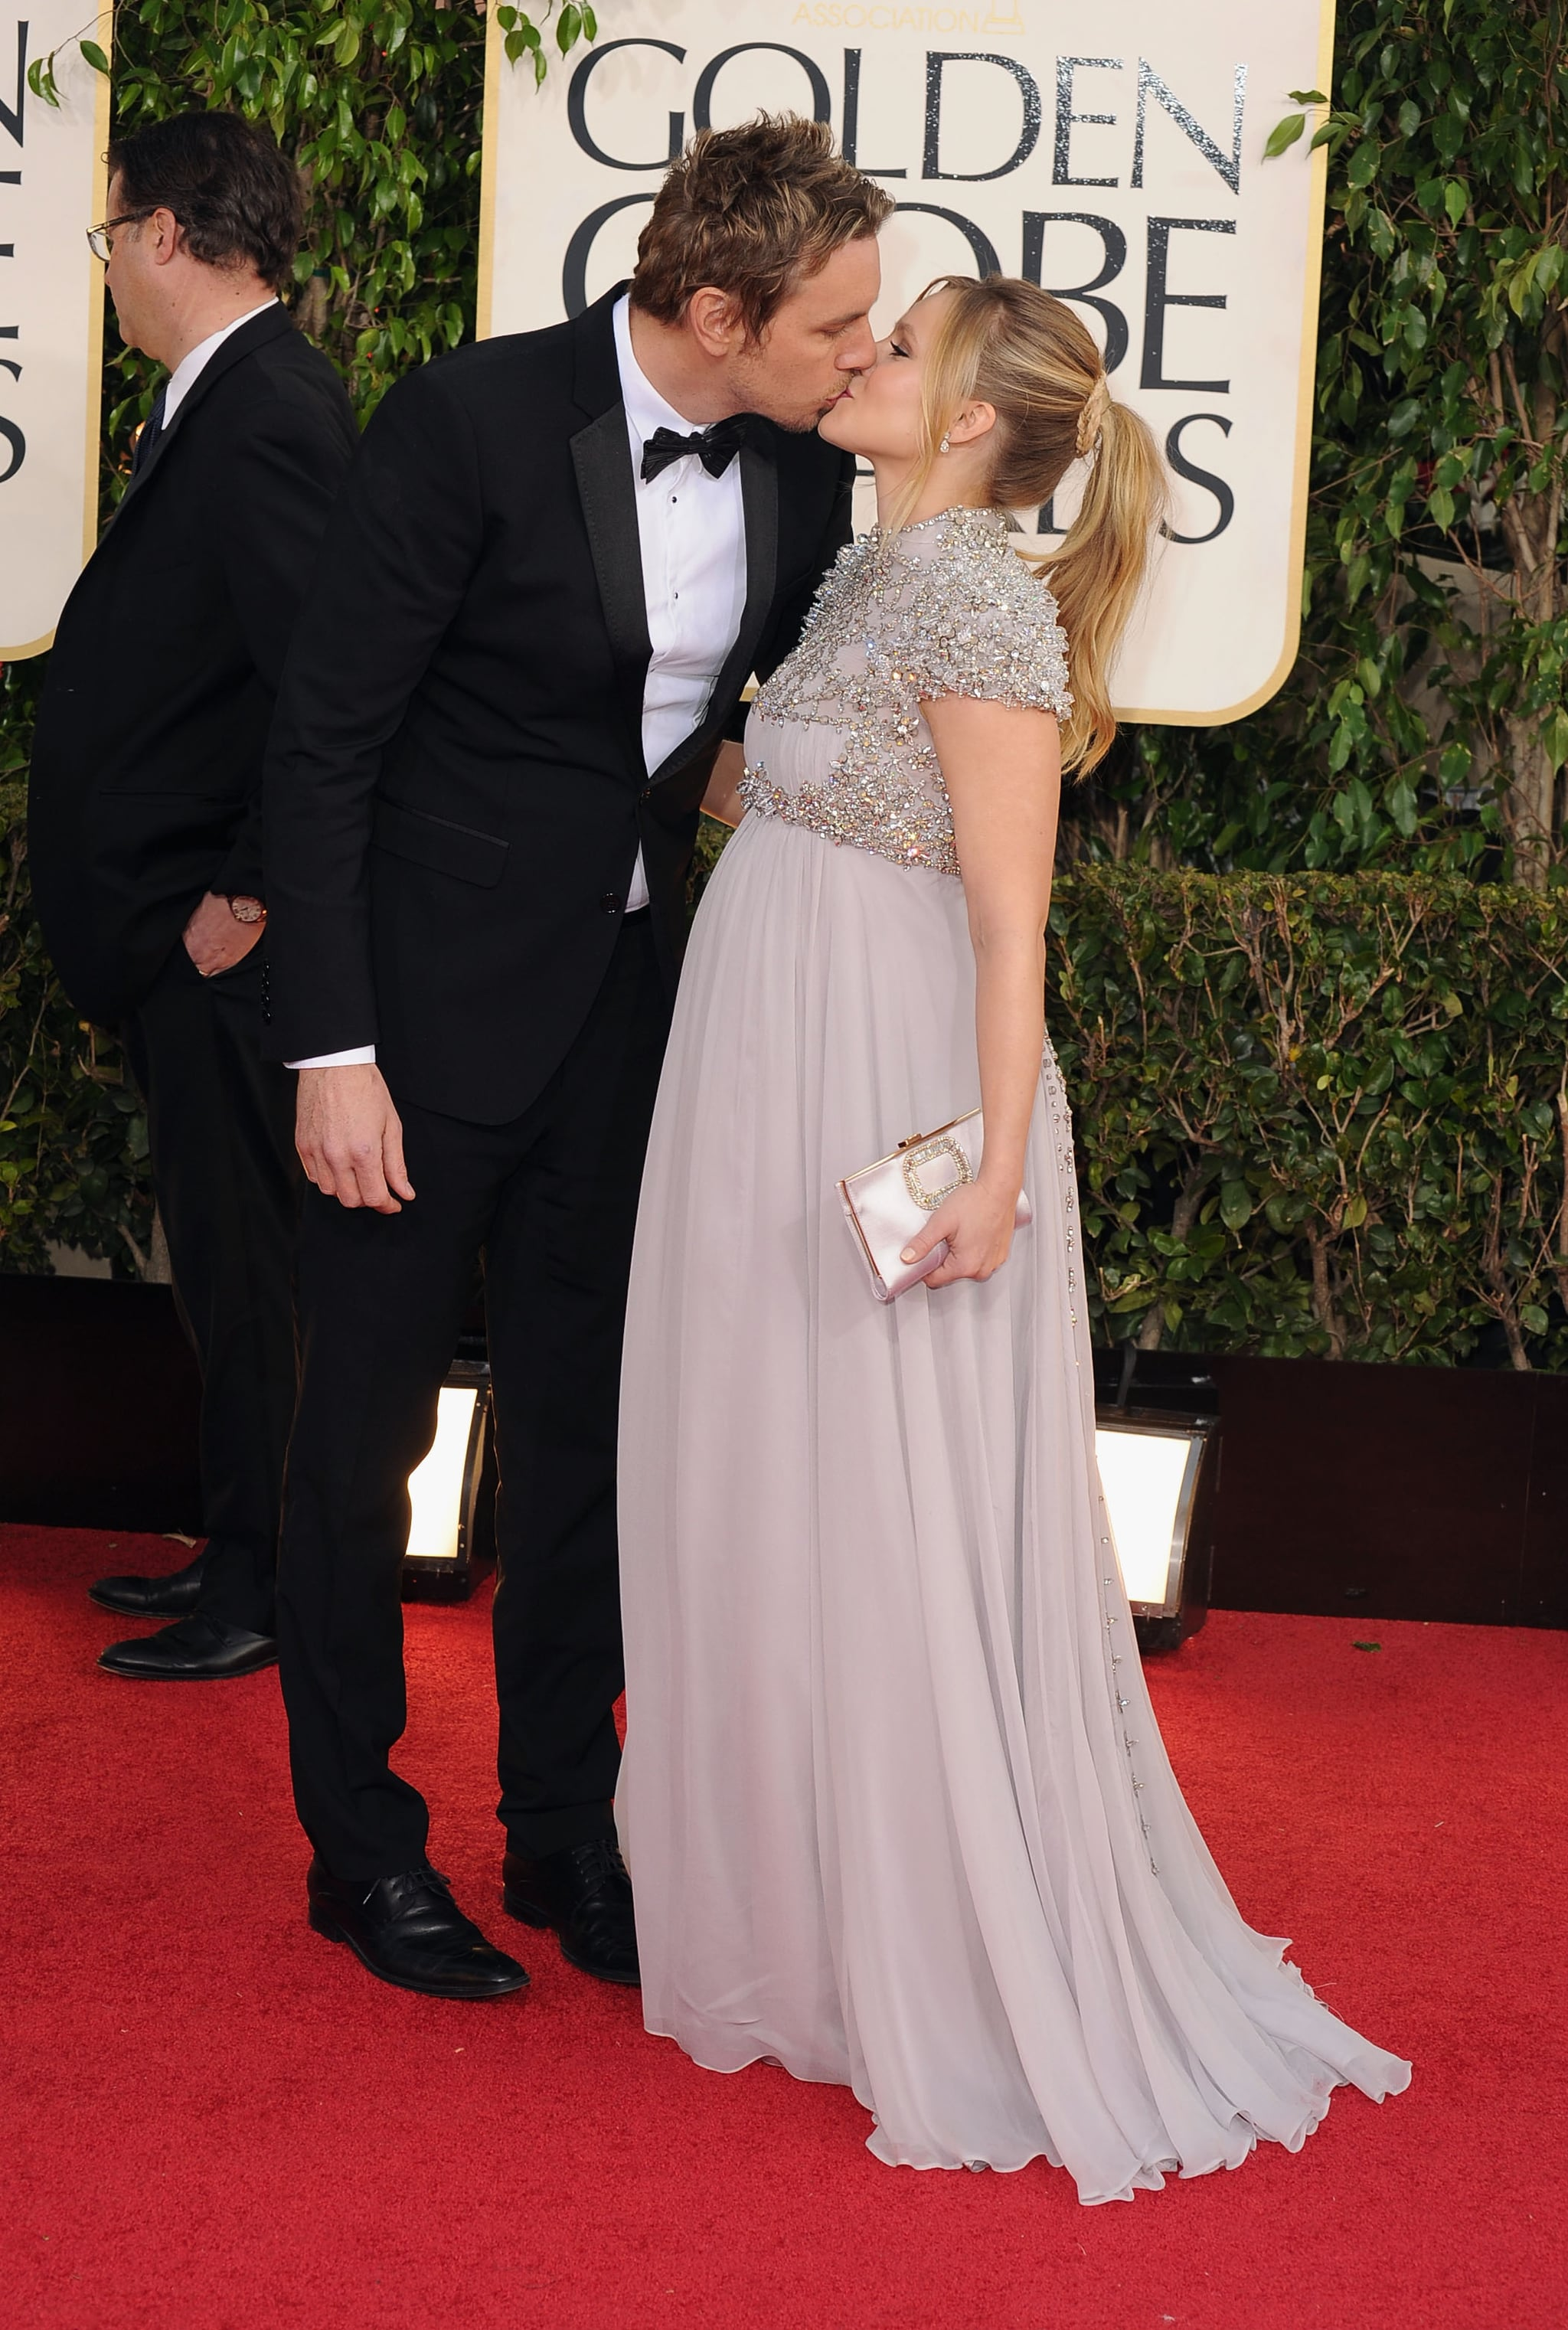 Kristen Bell welcomed her first child, Lincoln, with Dax Shepard on March 28. The couple later got married at a Los Angeles County courthouse in October.